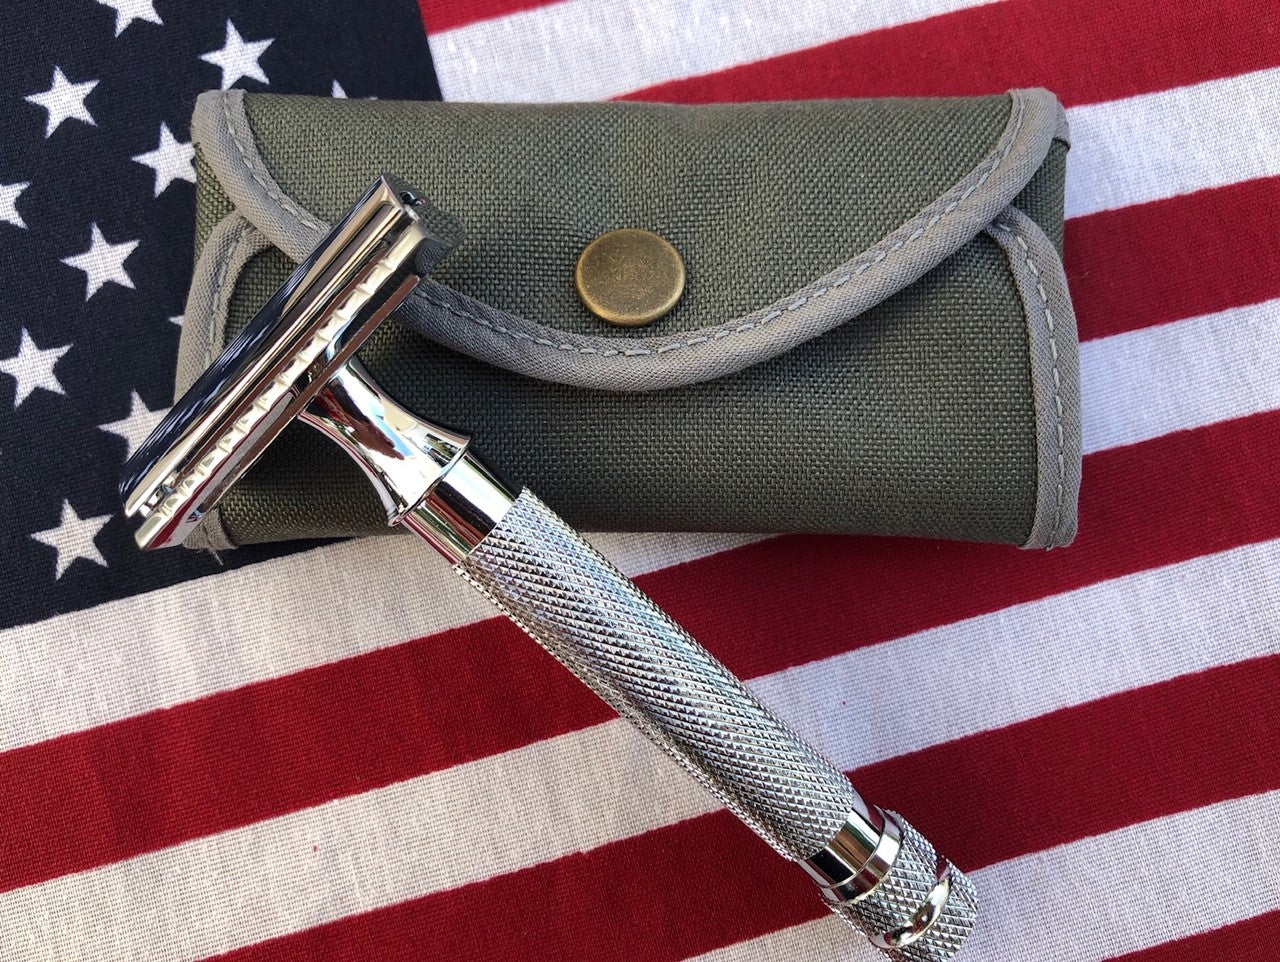 Cosmetic Second - Spearhead Safety Razor Case